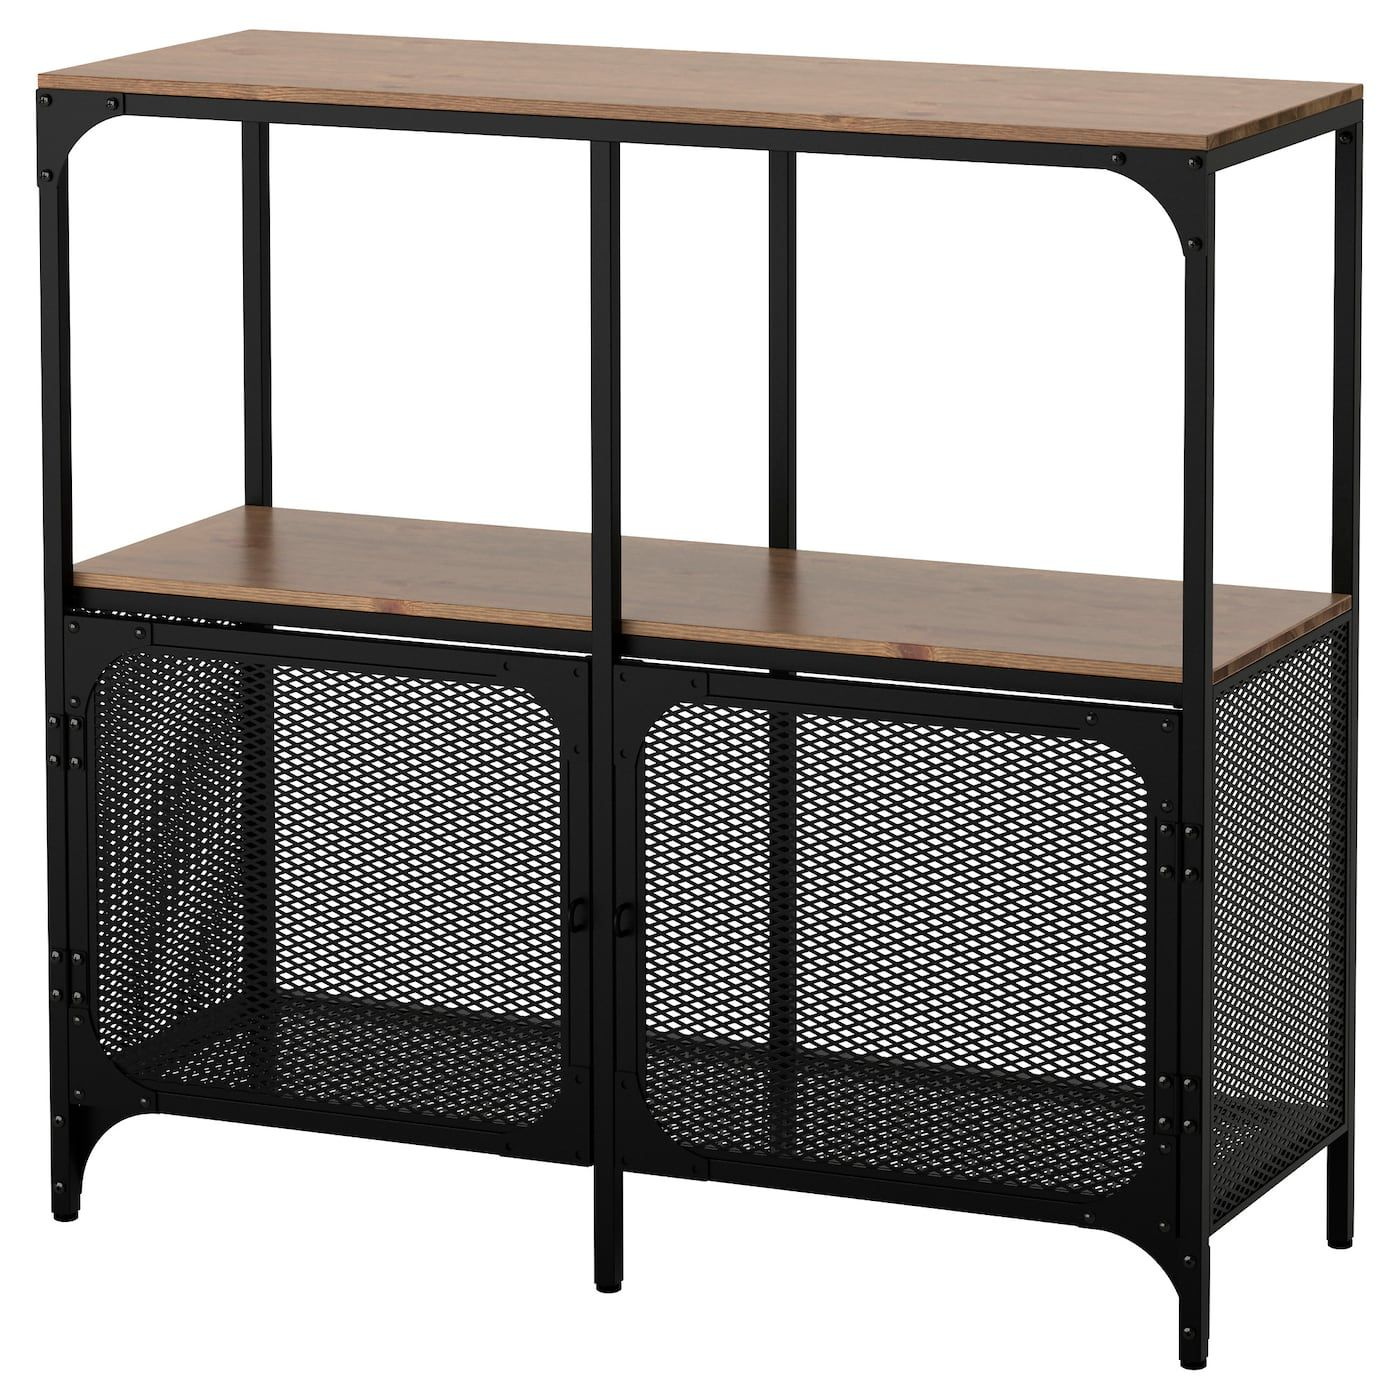 Ikea Metall Küchenregal FjÄllbo Shelf Unit Black In 2019 Notre Petite Maison Ikea